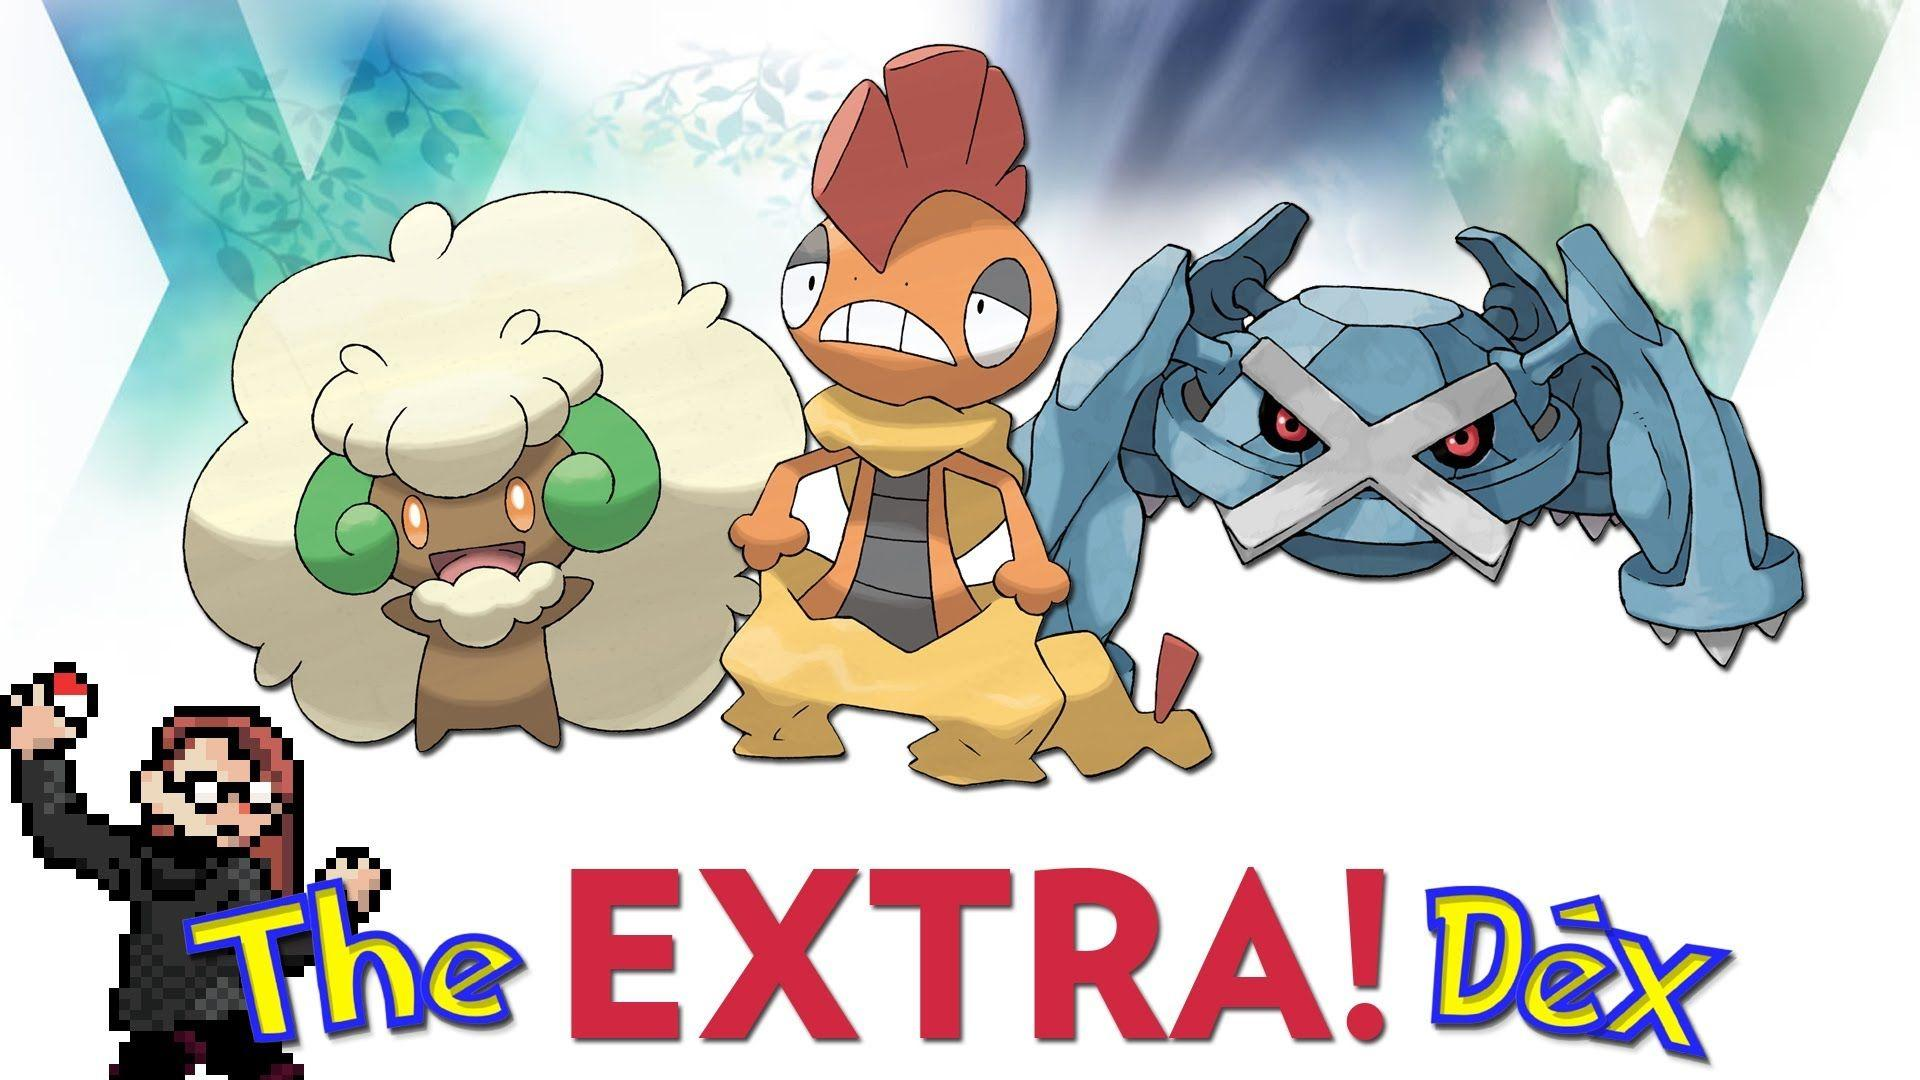 Whimsicott, Scrafty, Metagross! The ExtraDex